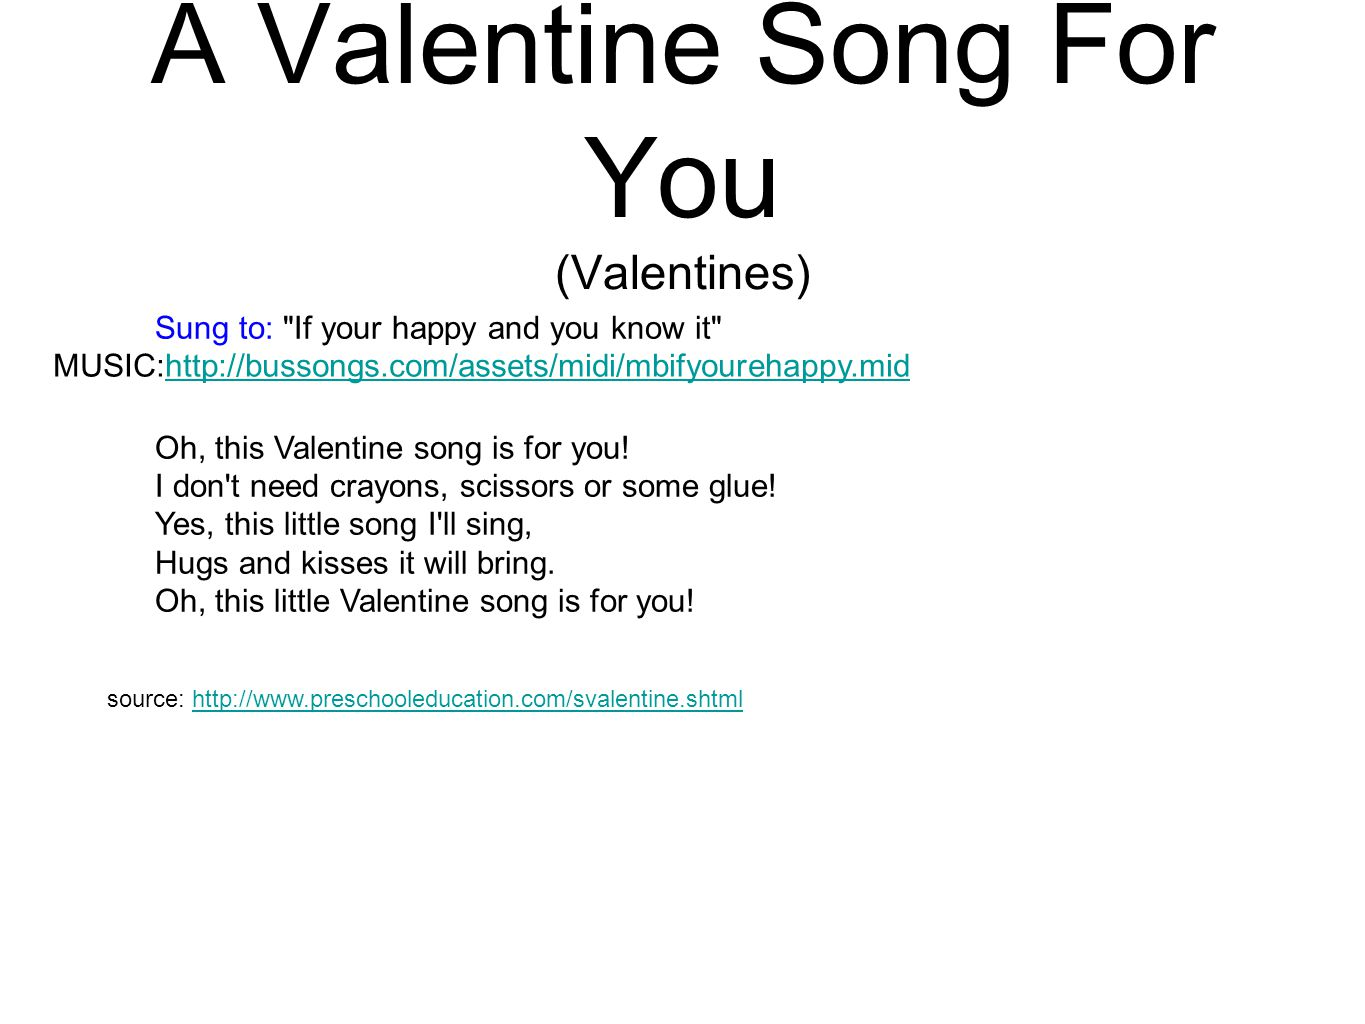 A Valentine Song For You (Valentines) Sung to: